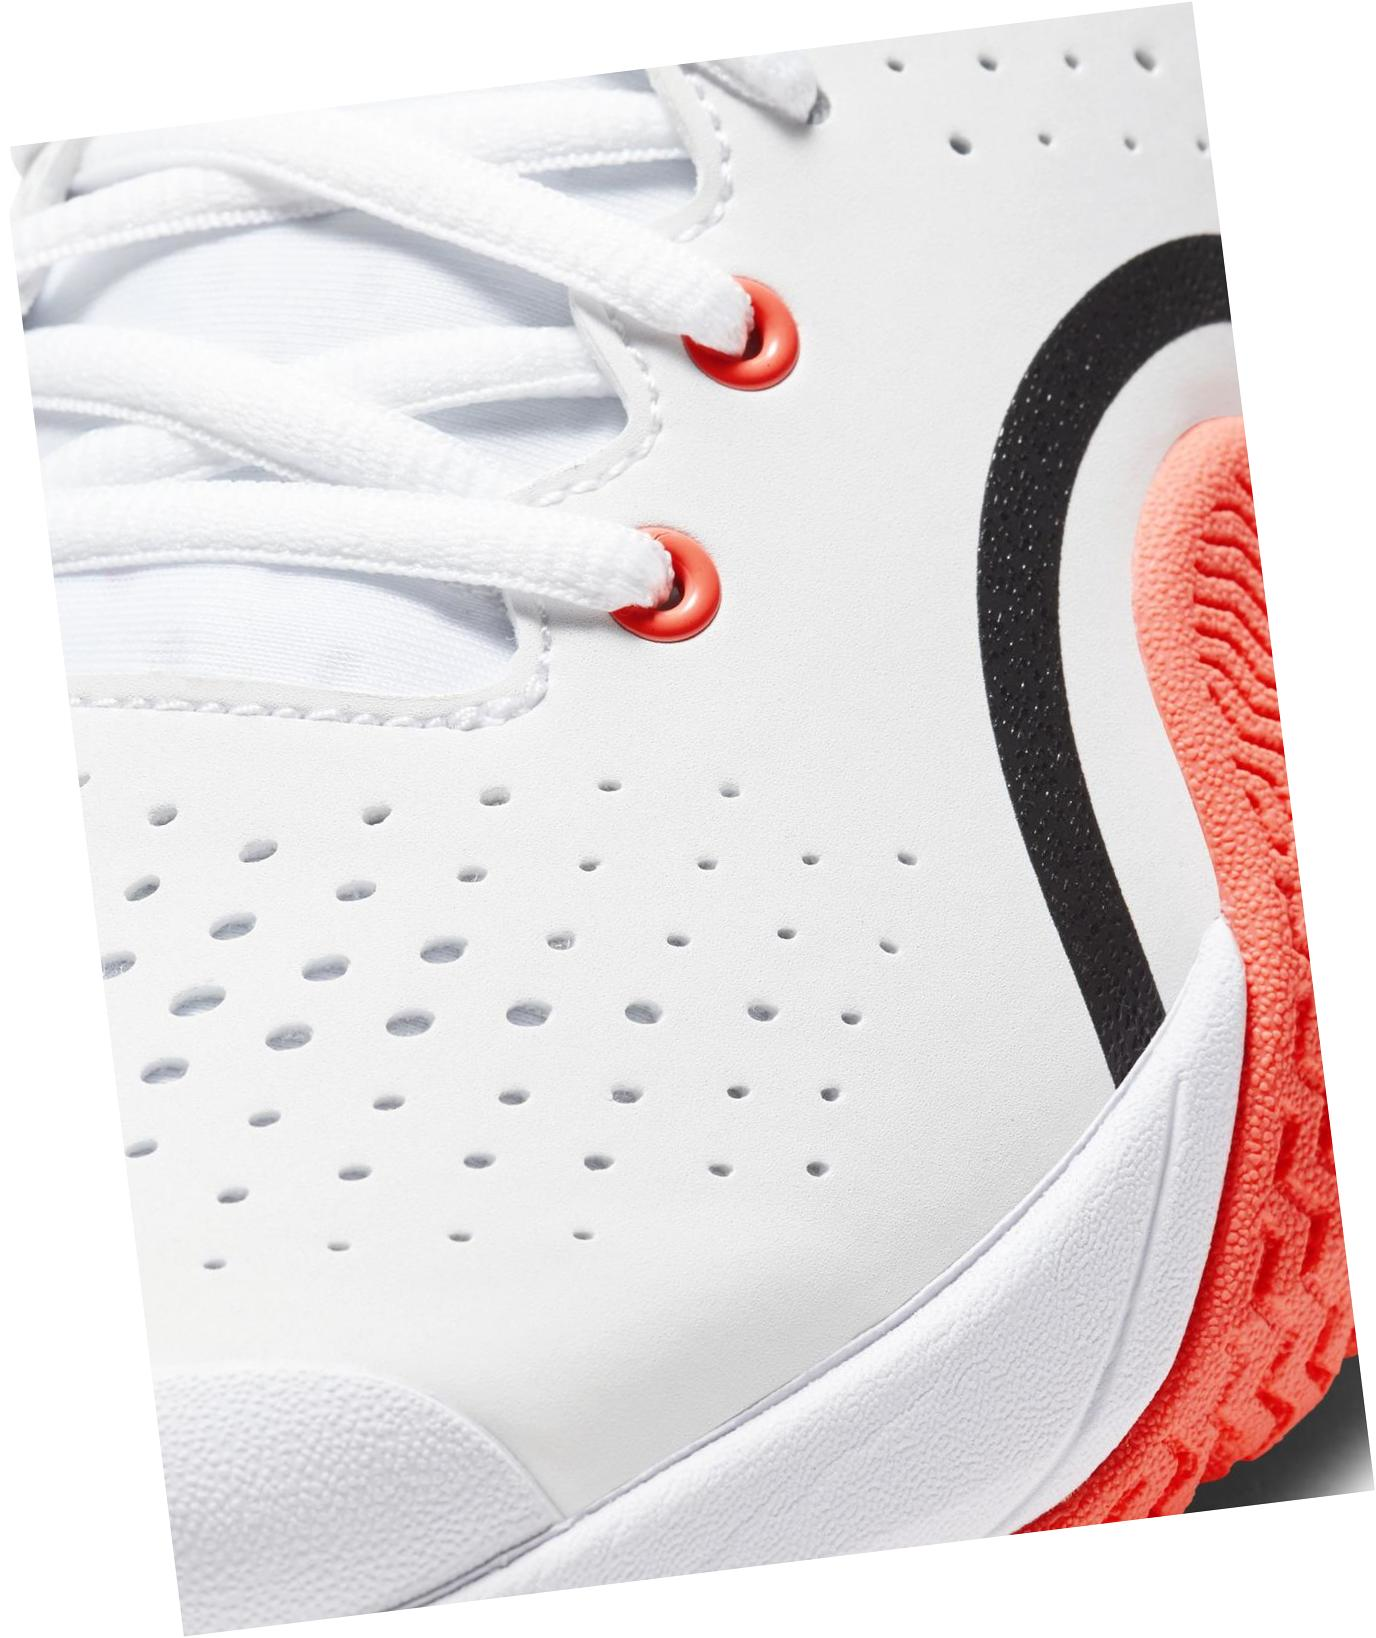 NikeCourt Tech Challenge 20 White / Hot Lava / Black / Dark Gray